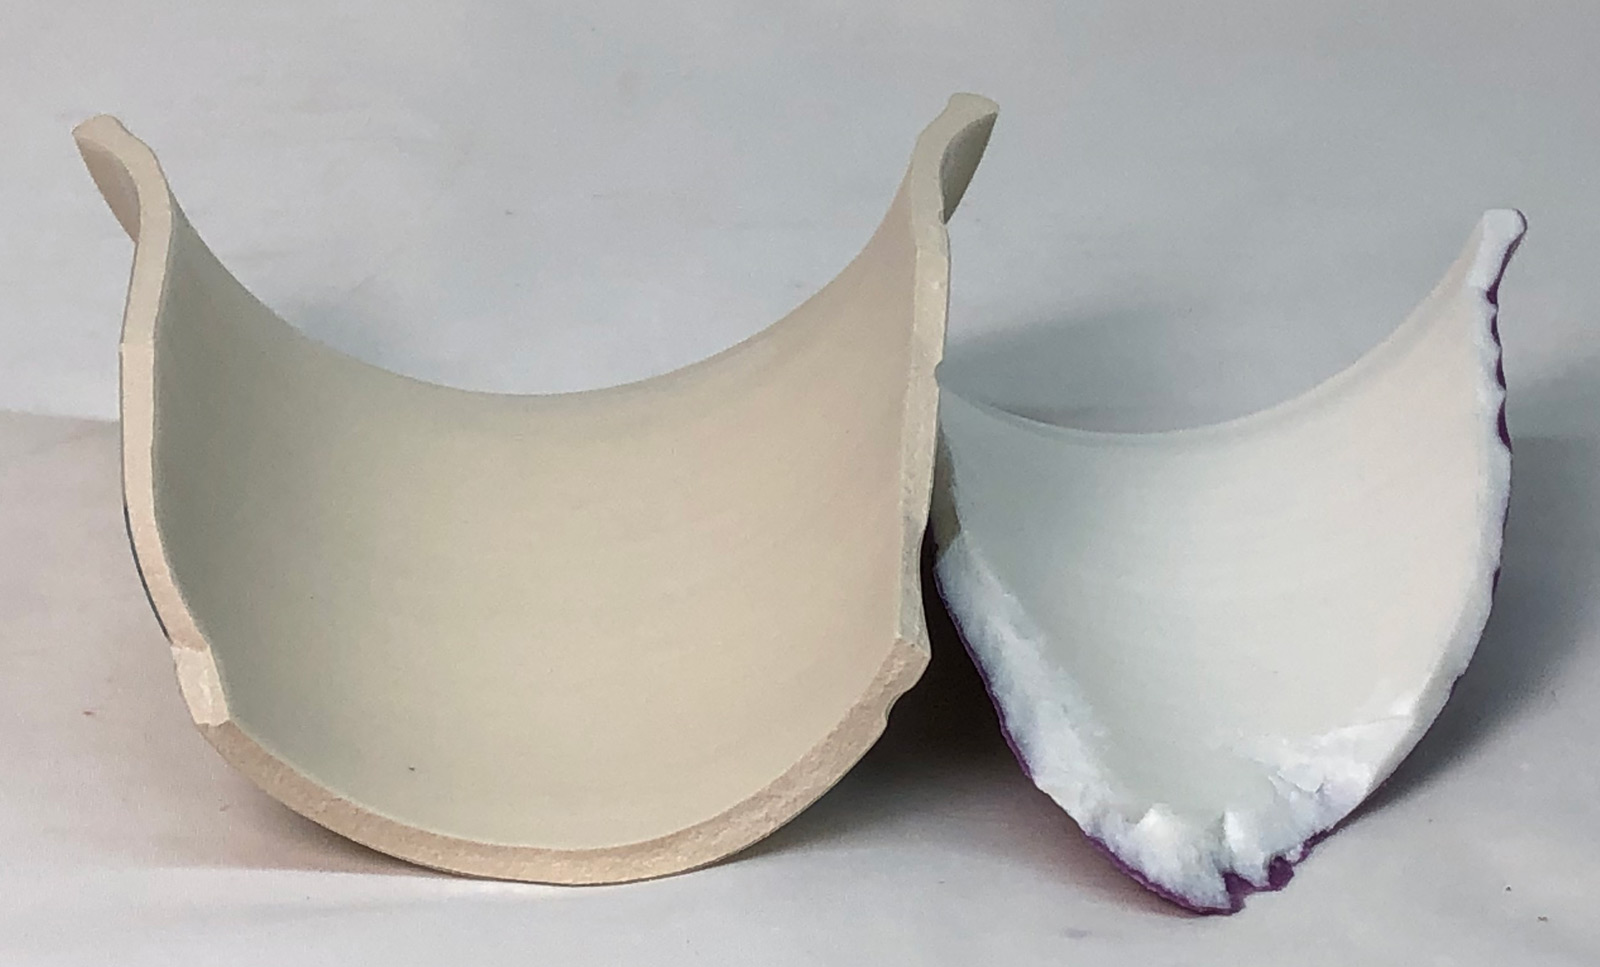 Cone 6 whiteware vs. vitreous porcelain when it breaks